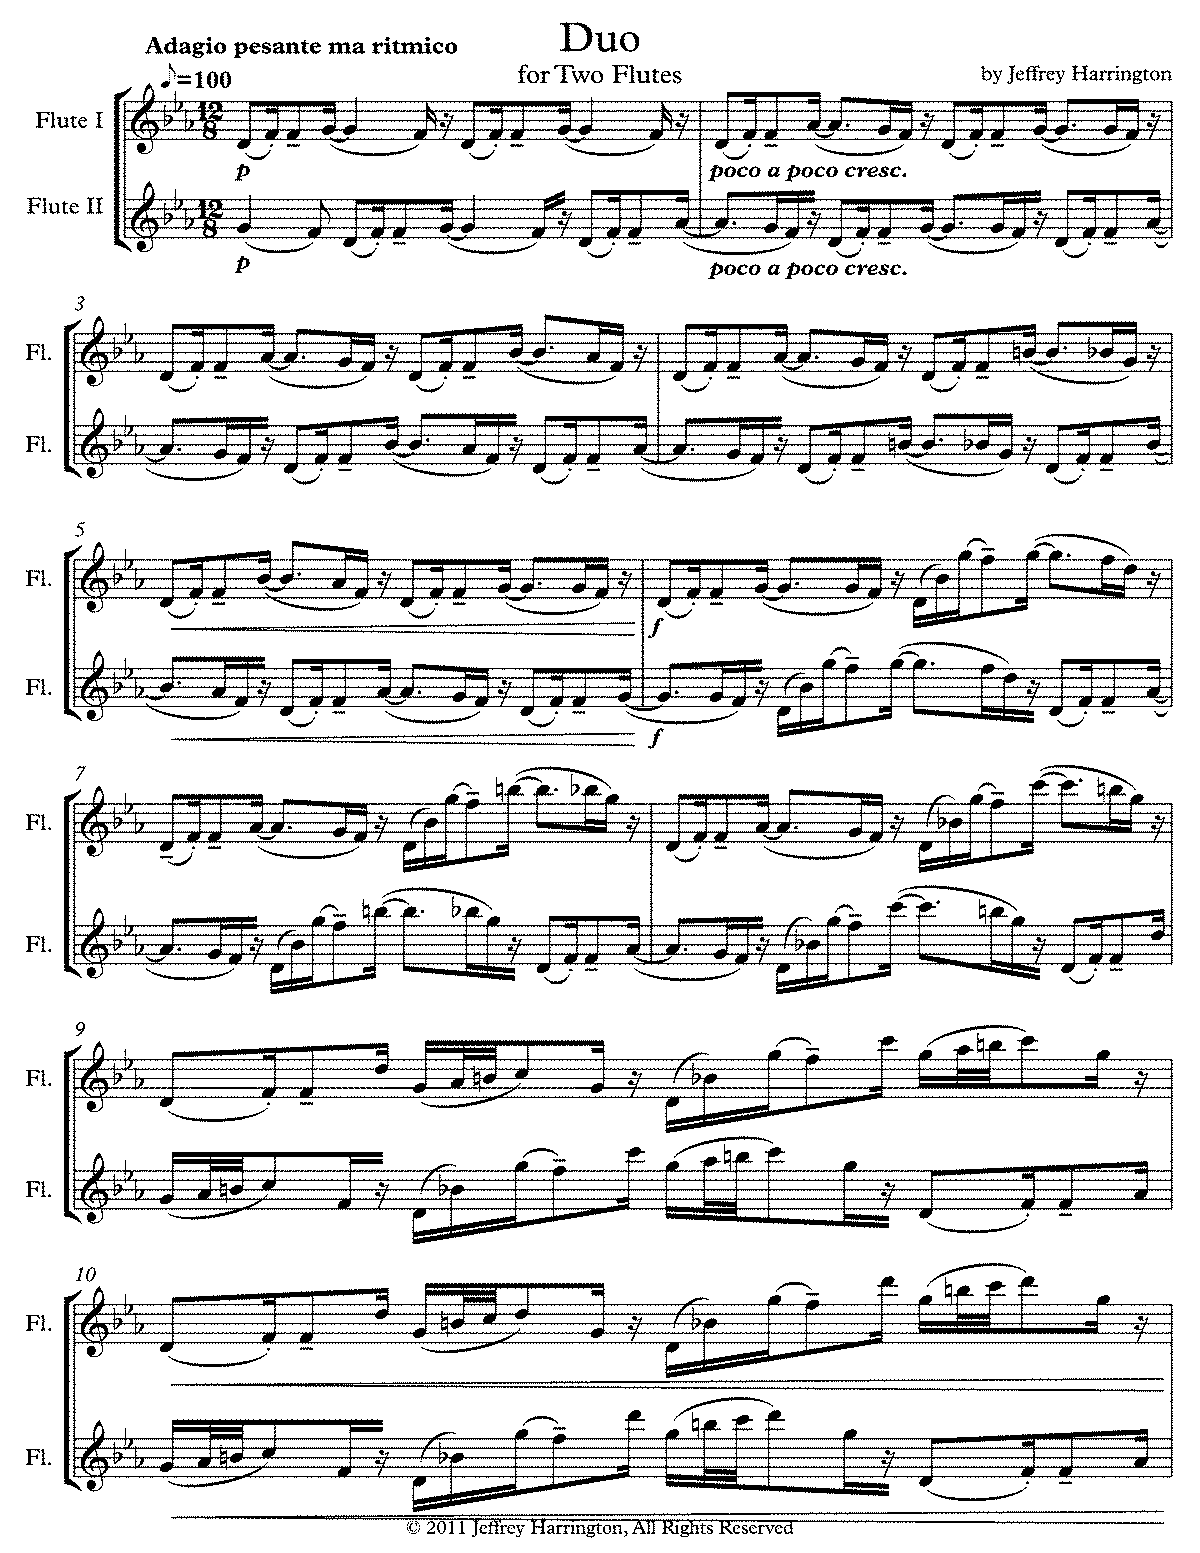 PMLP312733-duo for two flutes score.pdf